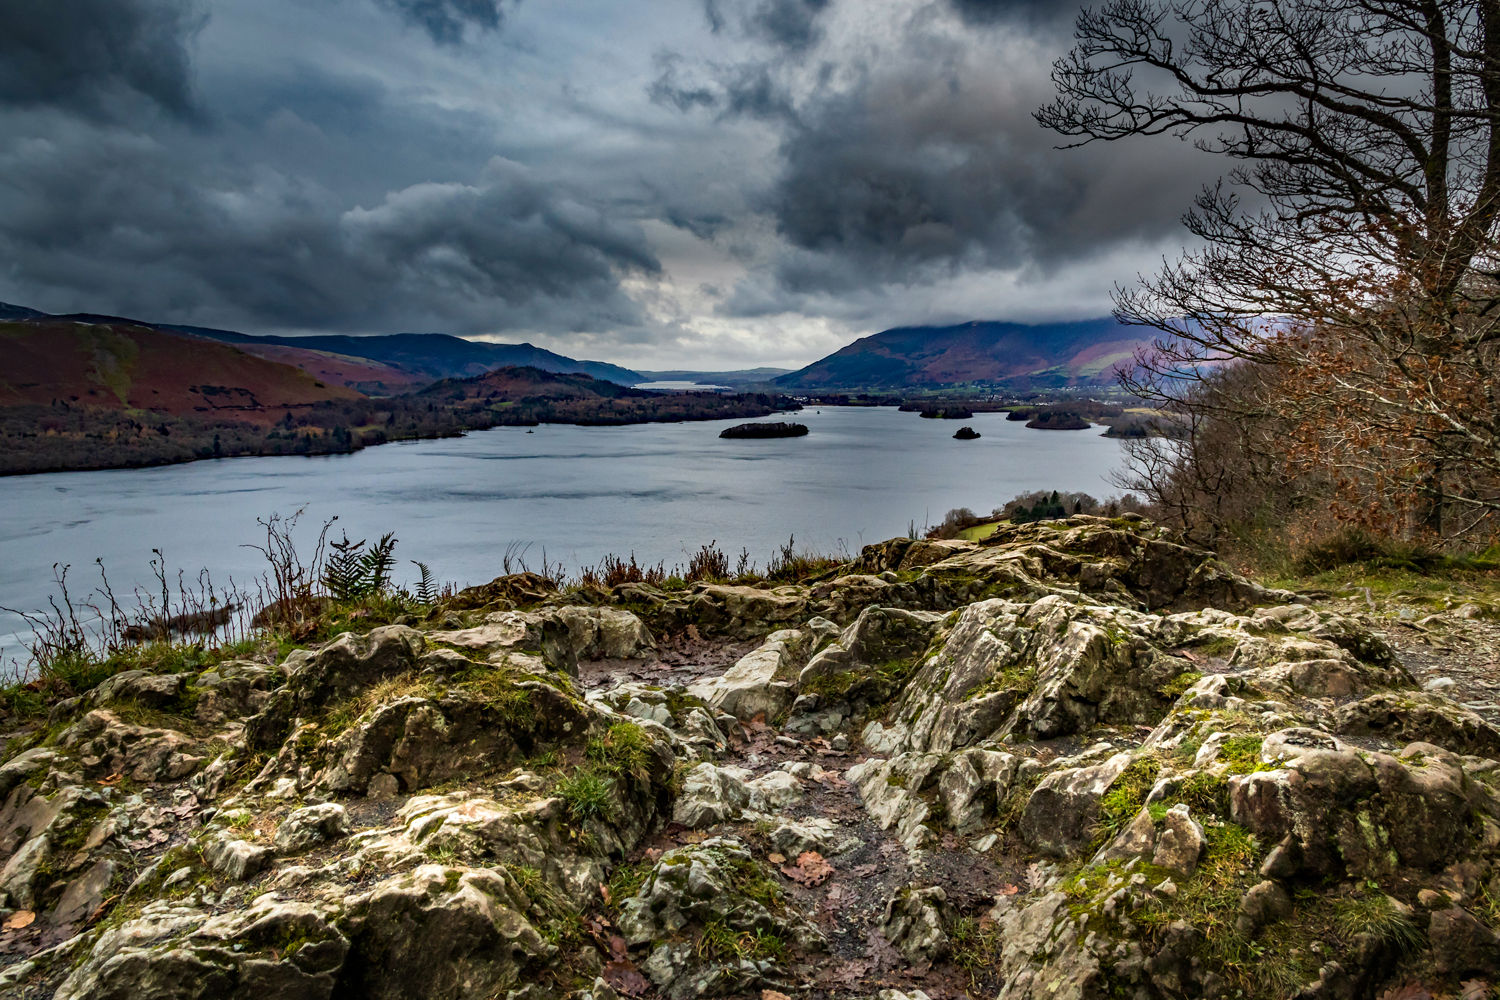 Derwentwater in the English Lake District with Bassenthwaite Lake in the distance